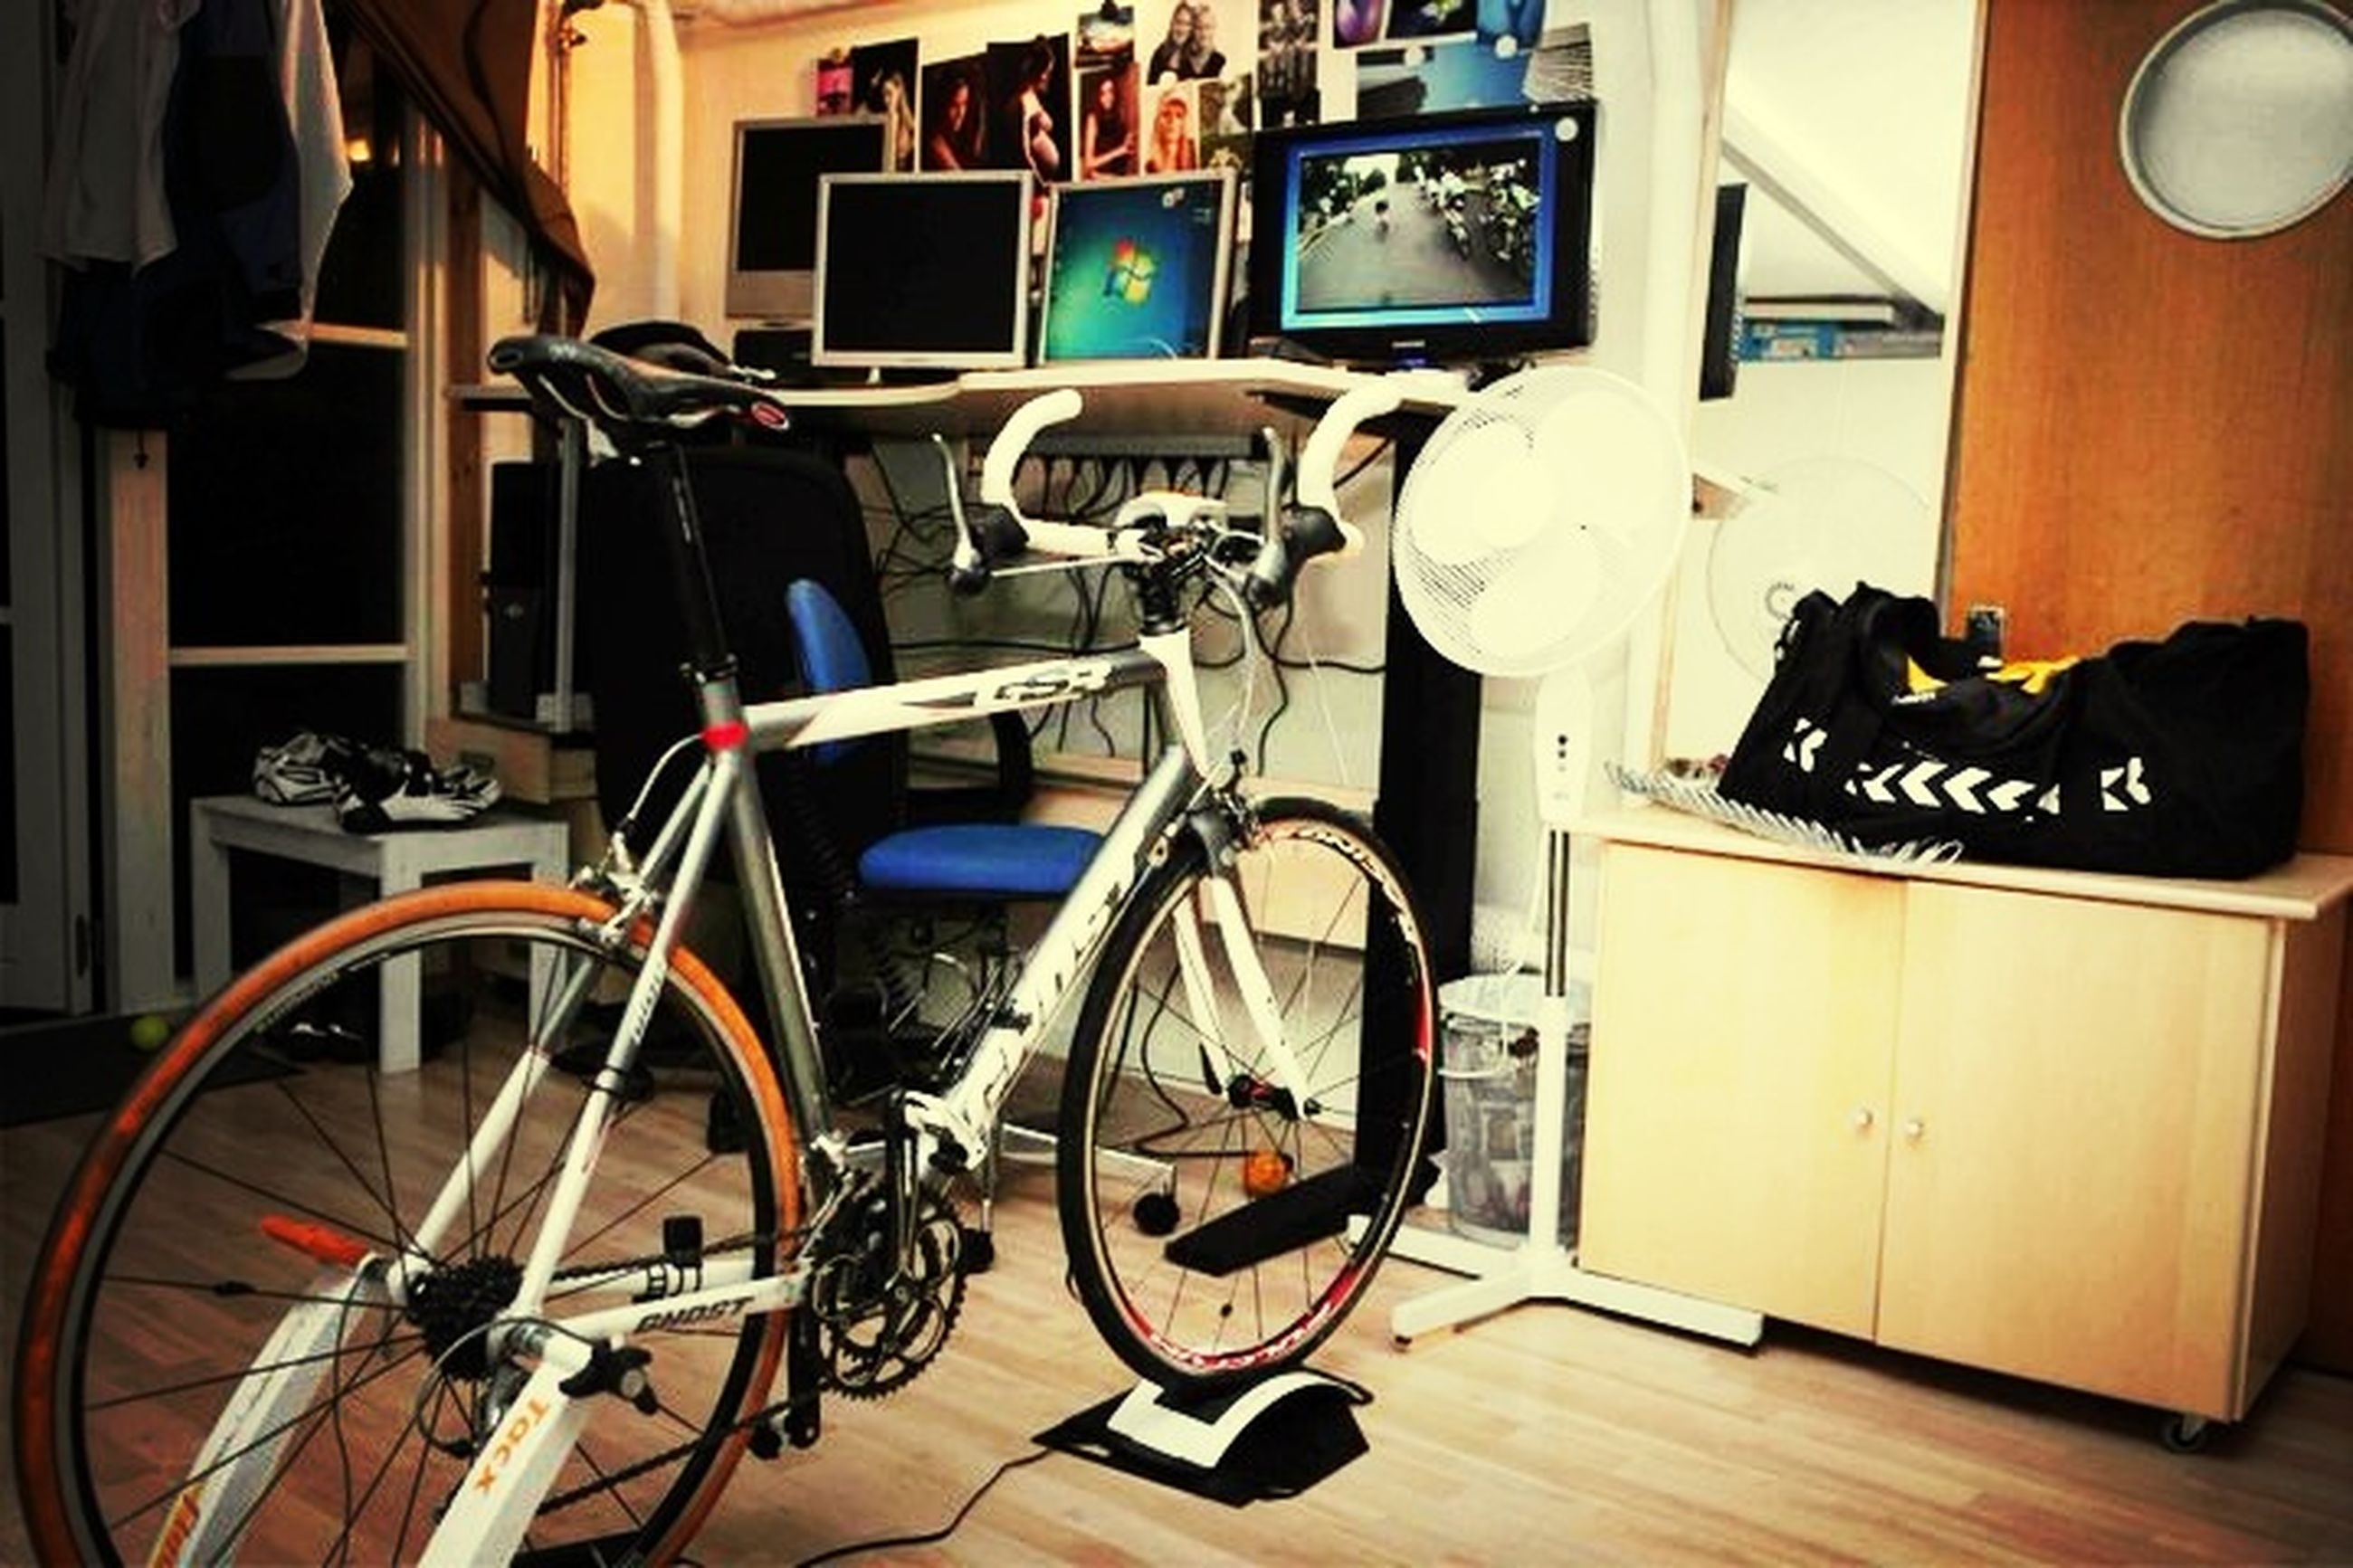 bicycle, mode of transport, transportation, land vehicle, parking, stationary, parked, built structure, architecture, indoors, building exterior, table, parking lot, no people, house, absence, car, street, motorcycle, chair